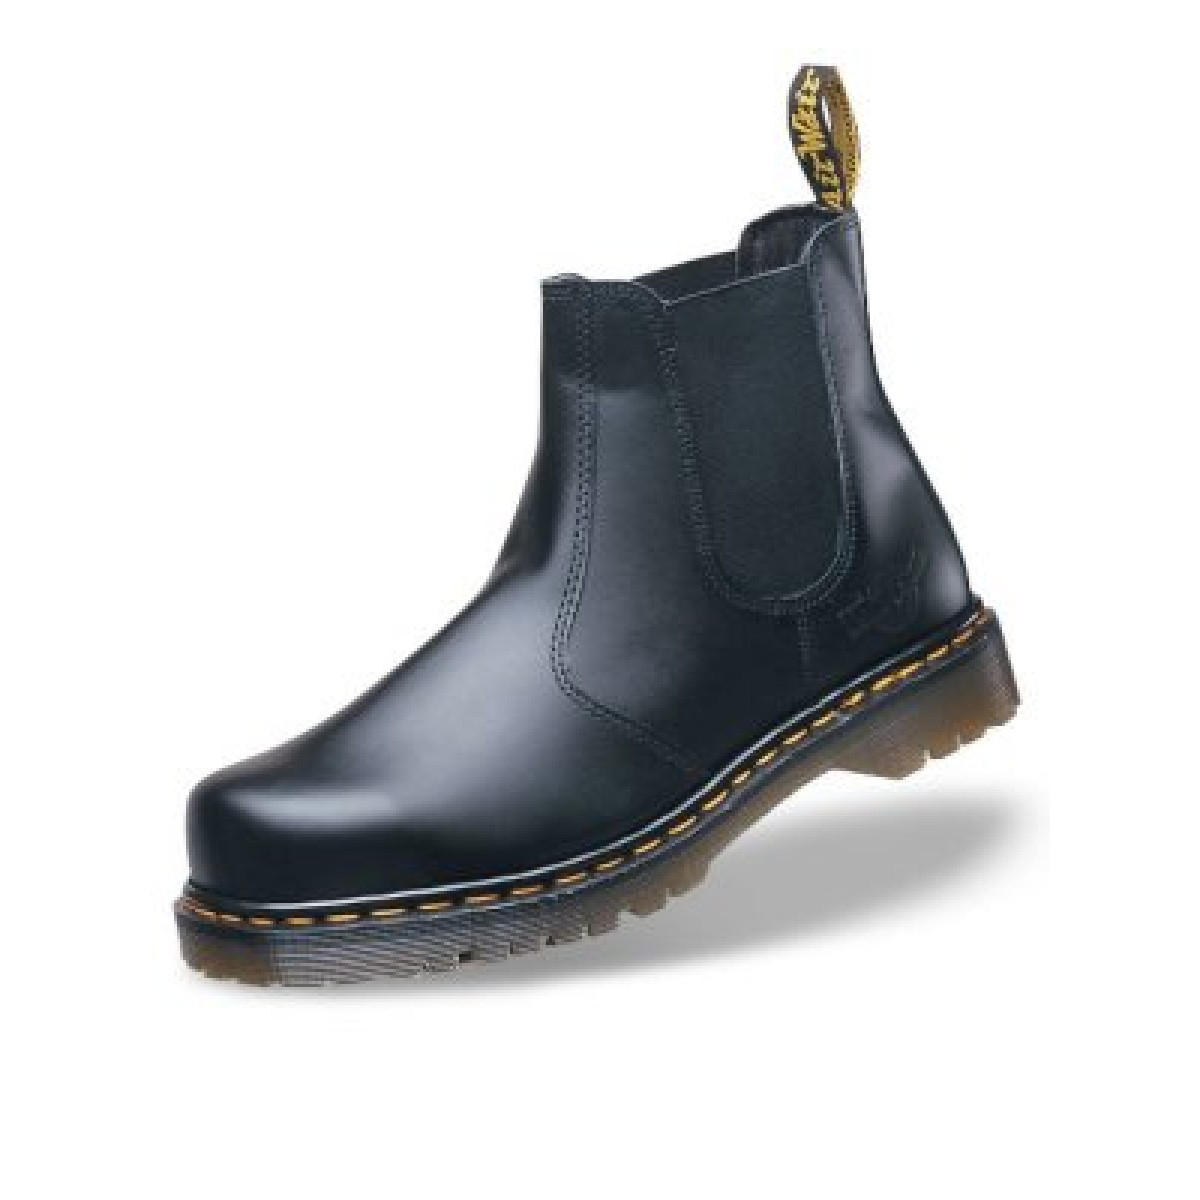 dbe79456cc9 Dr Martens Black Icon Safety Boot